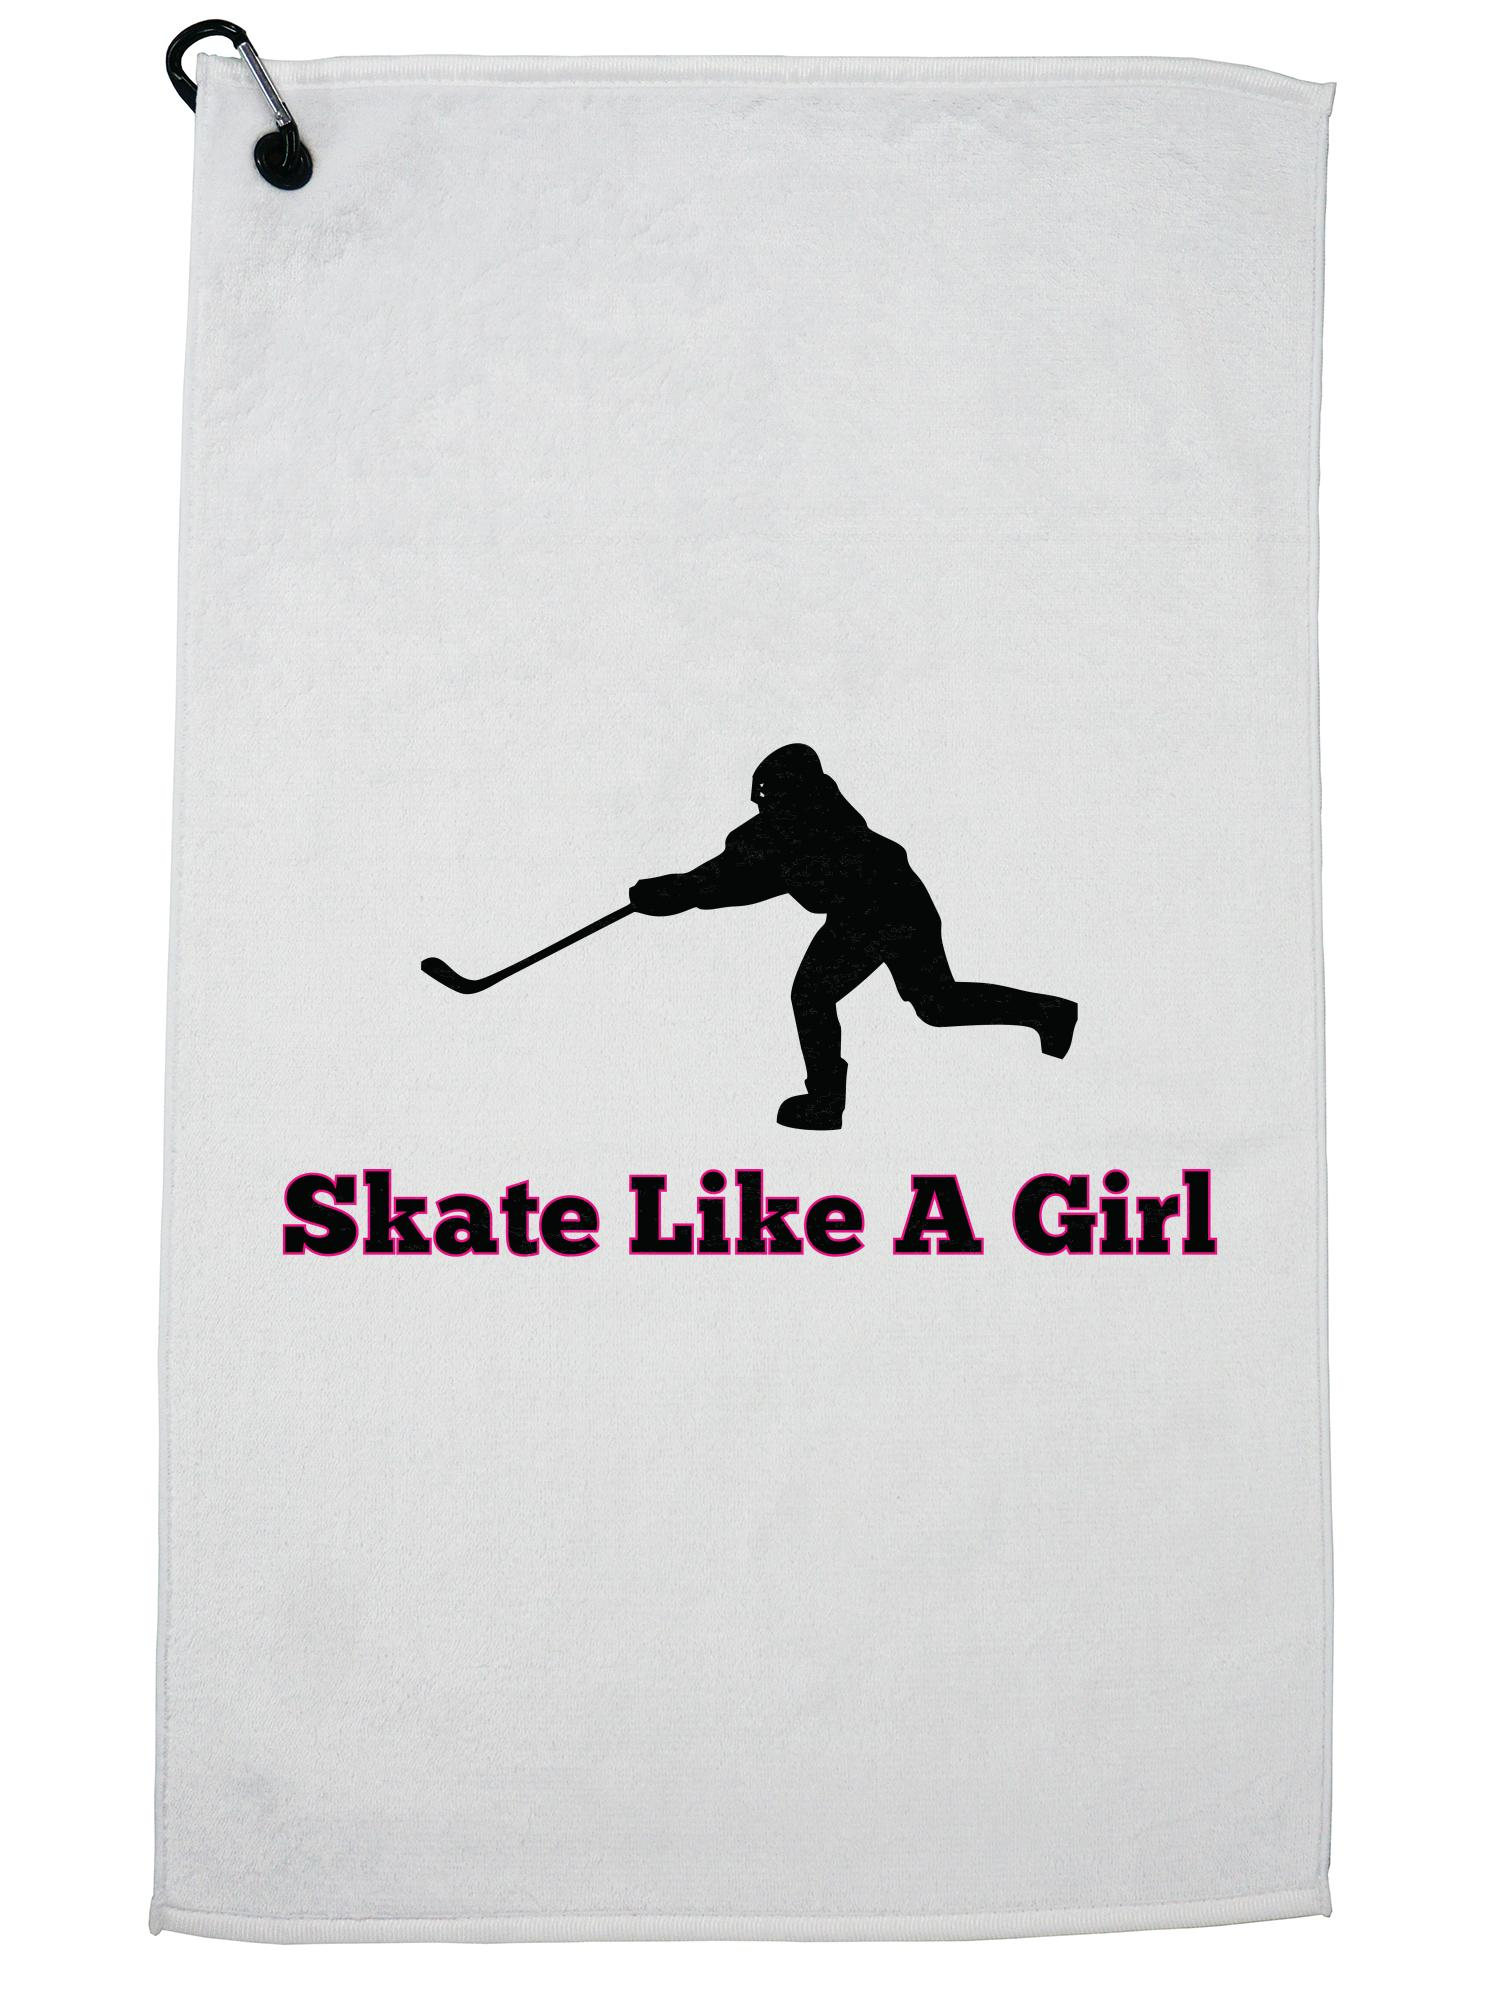 Skate Like A Girl Hockey Player Pride Golf Towel with Carabiner Clip by Hollywood Thread